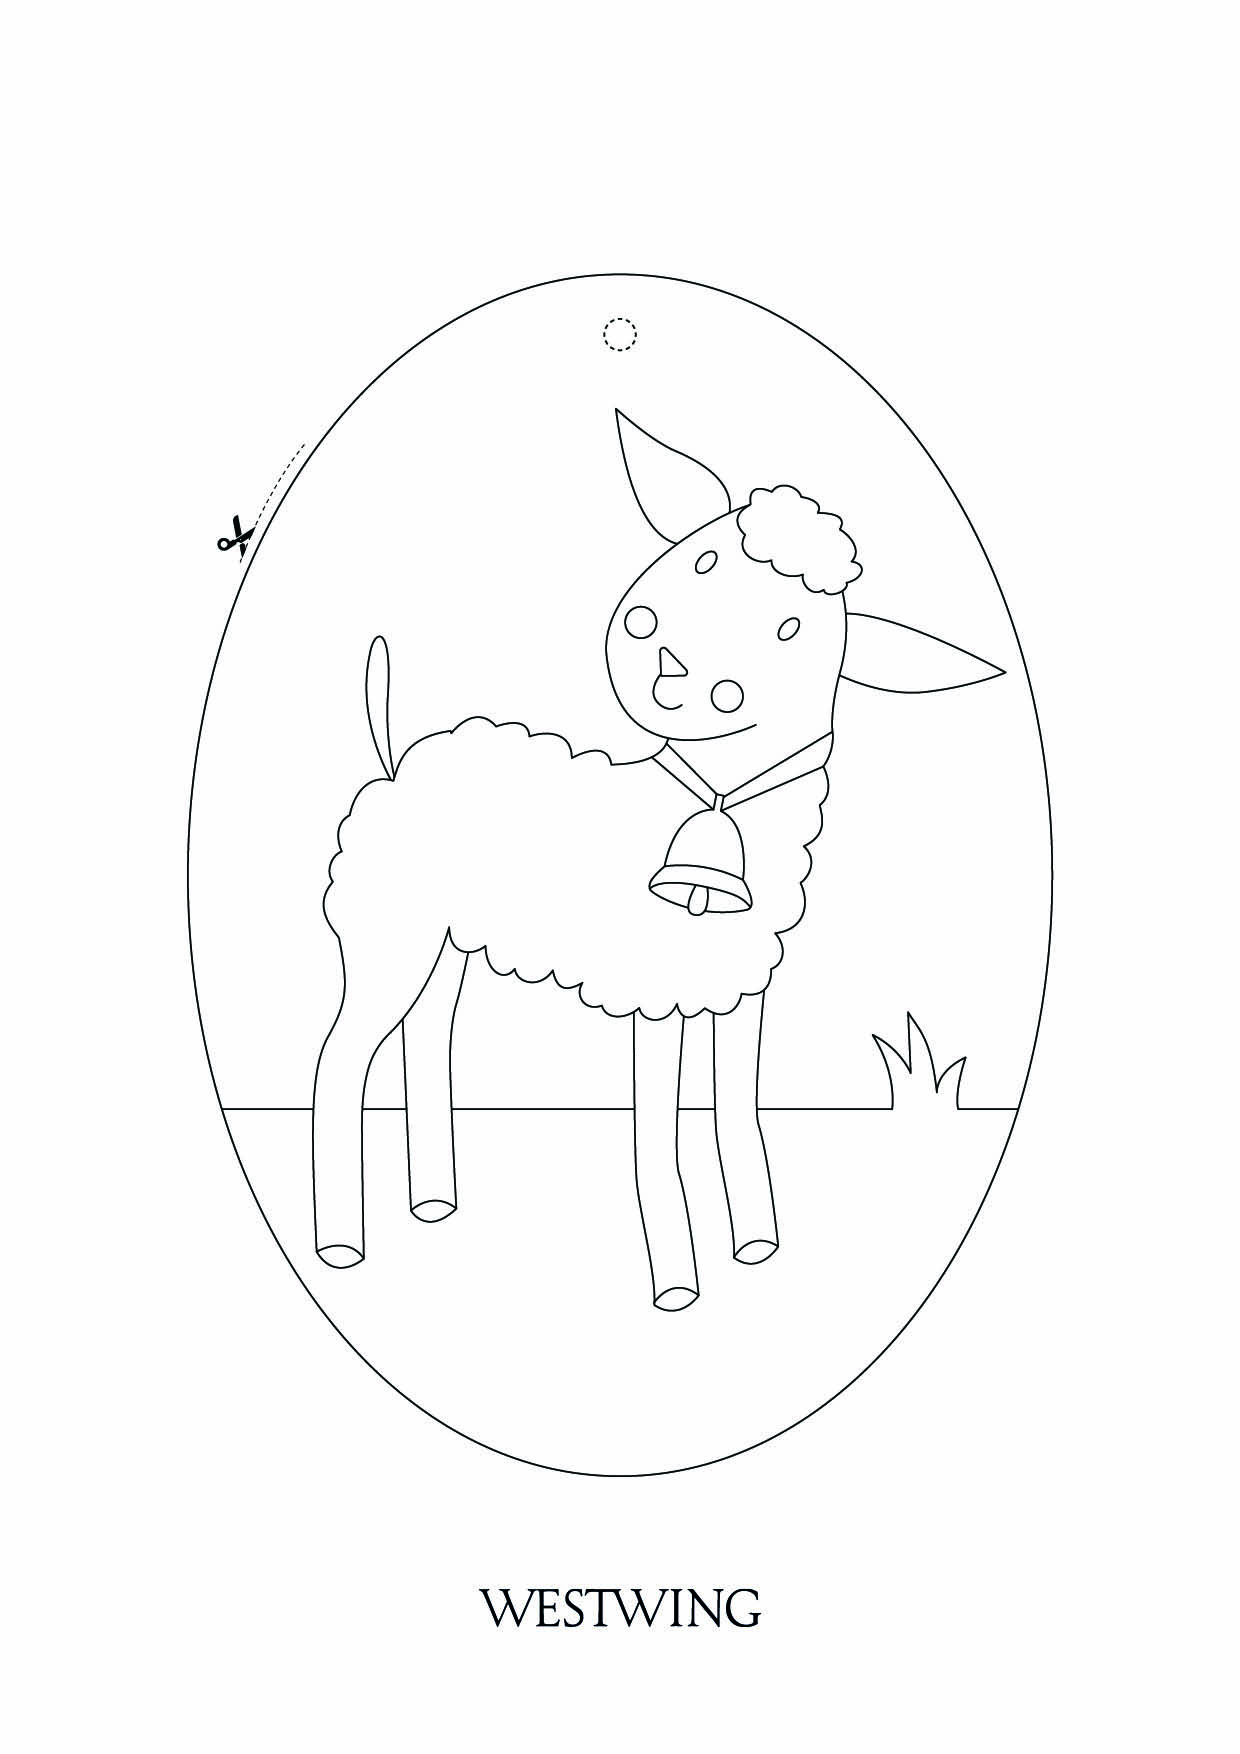 Simple free Easter coloring page to print and color